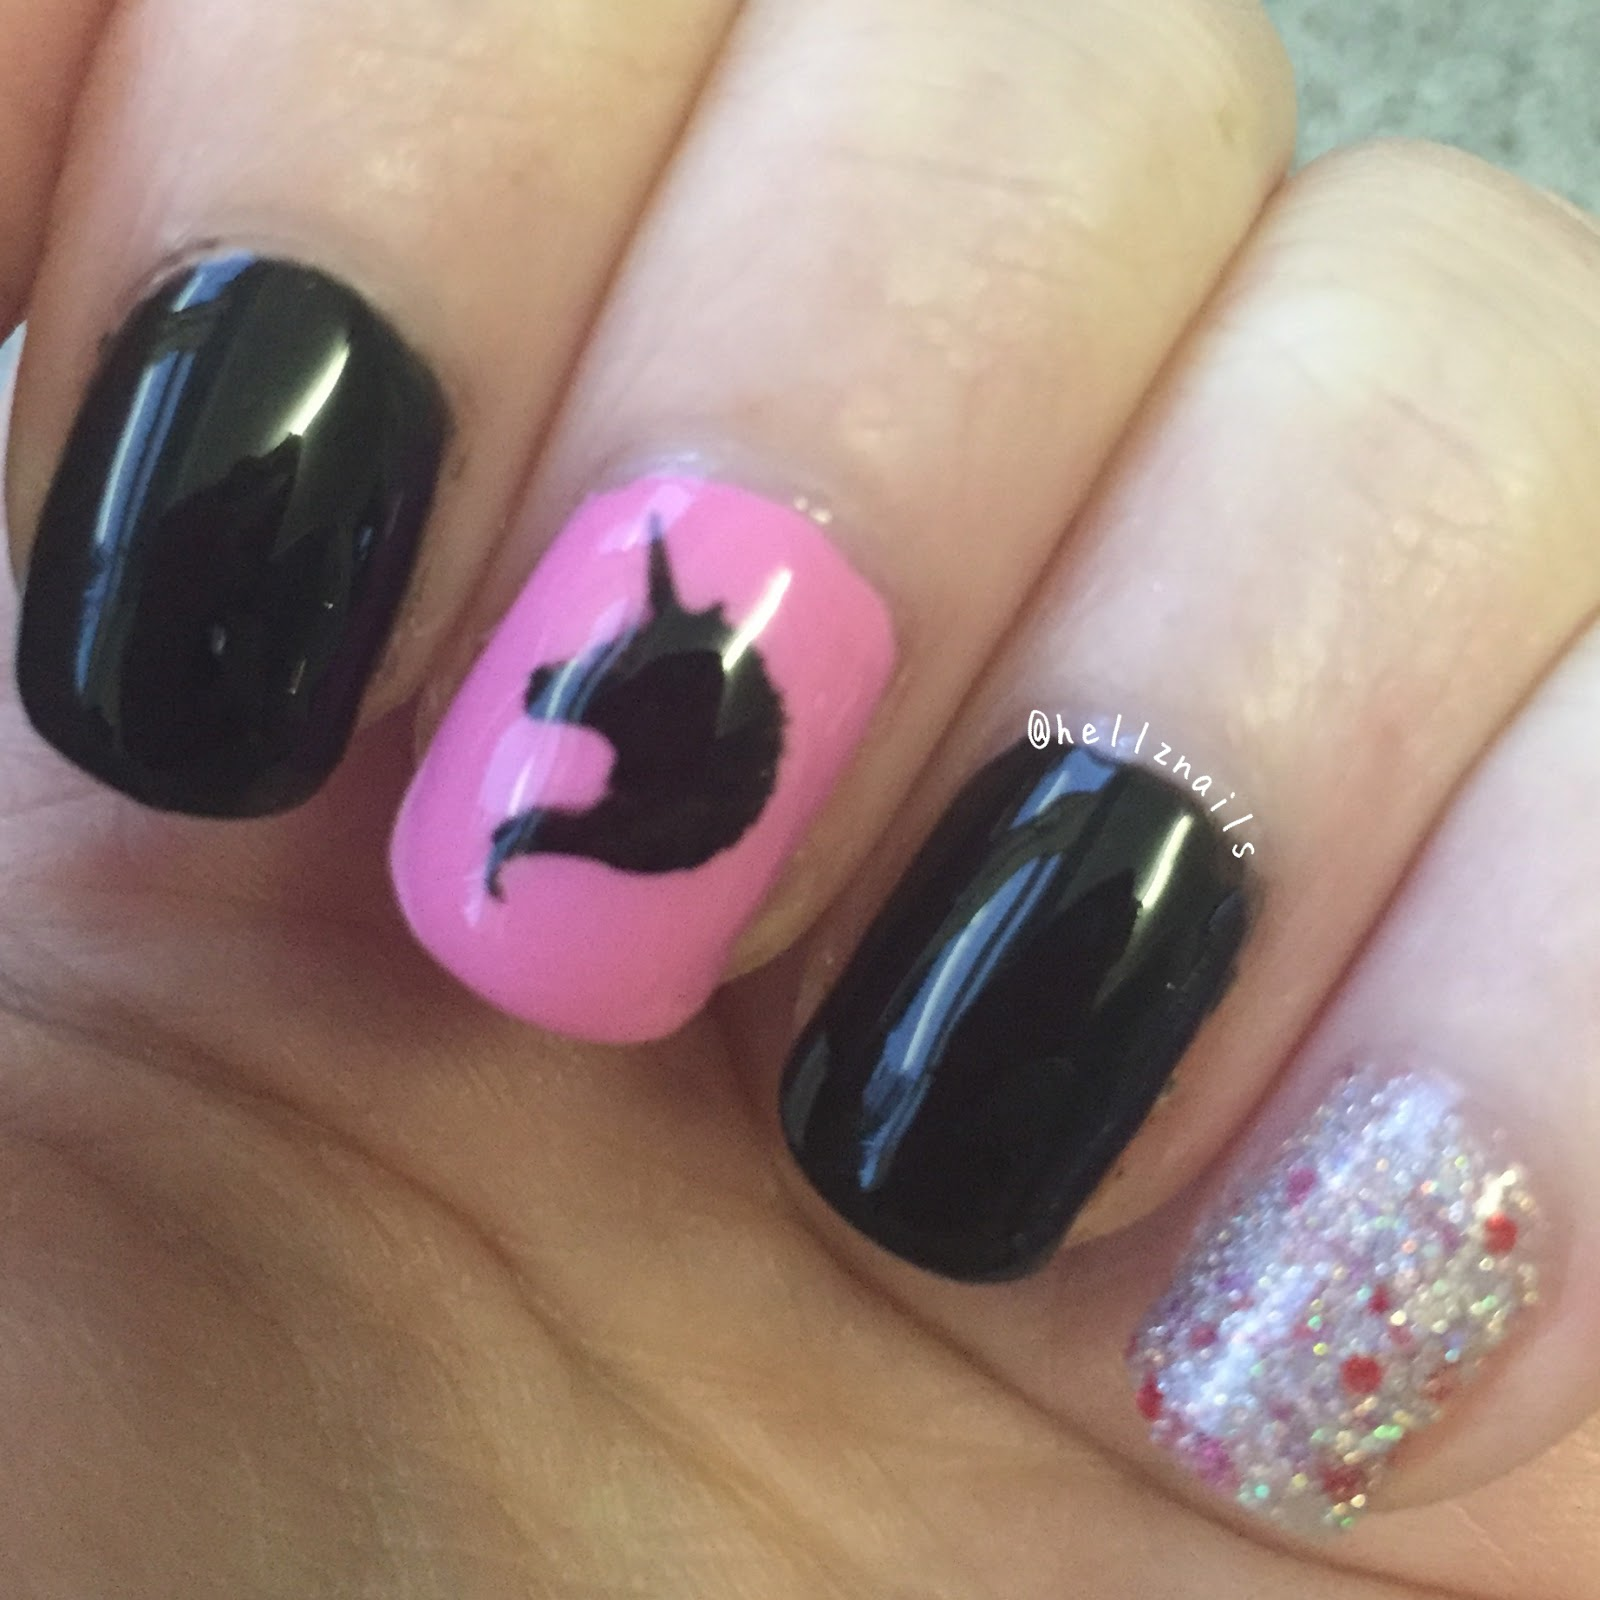 June nail art challenge unicorn hellz nails unicorn nail art true brit london taxi cab zoya sweet lacquer lust a prinsesfo Image collections